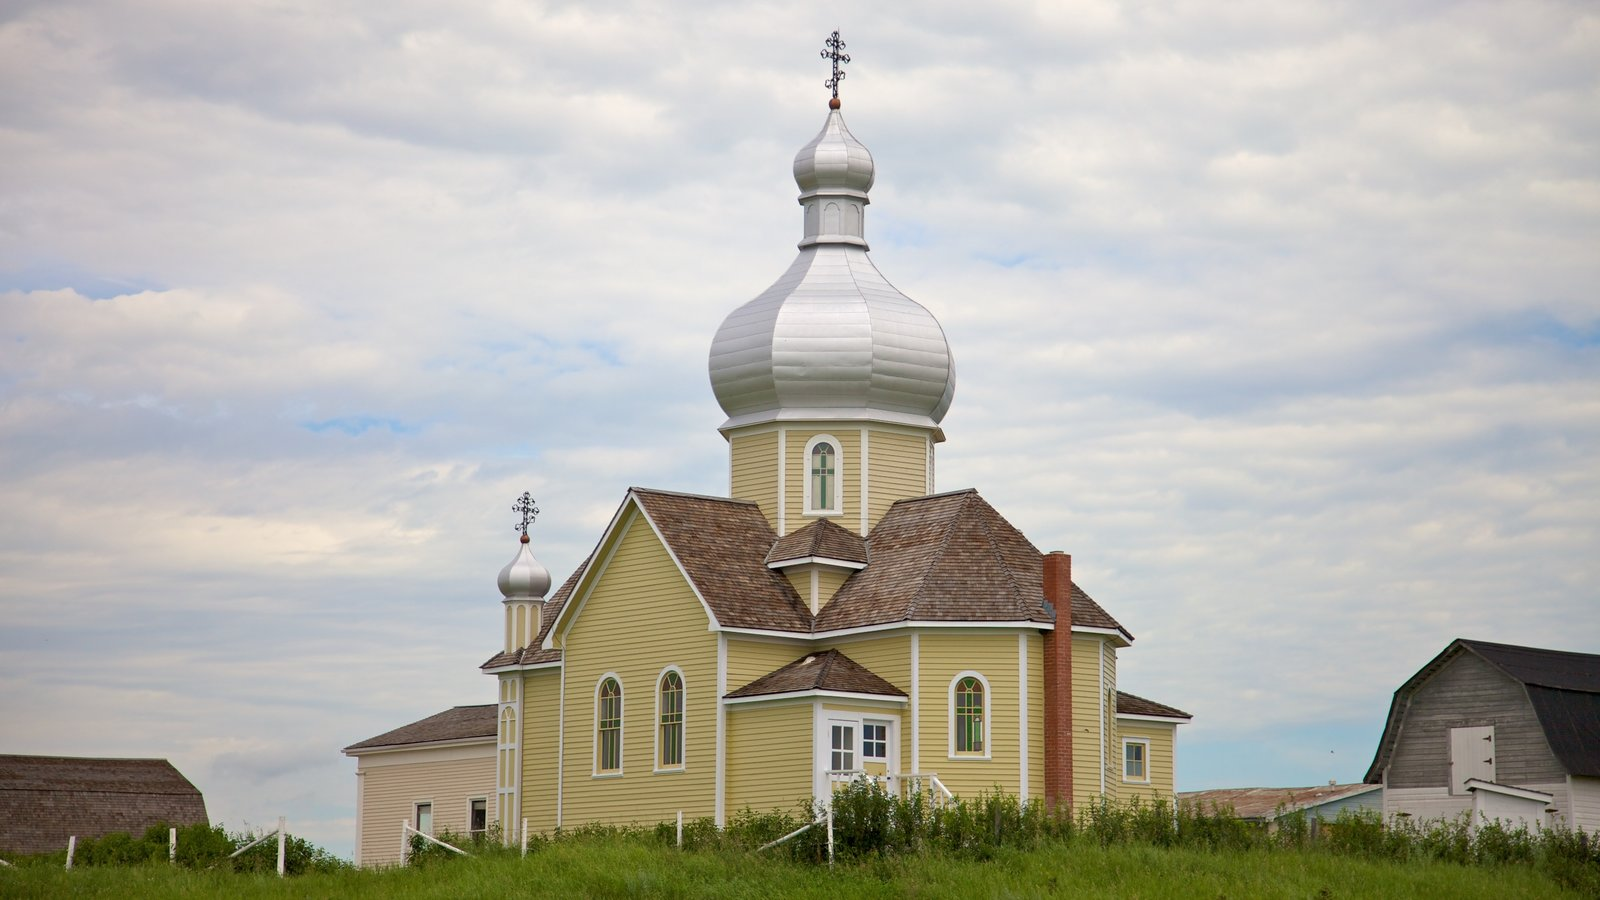 Ukrainian Cultural Heritage Village which includes a small town or village and a church or cathedral